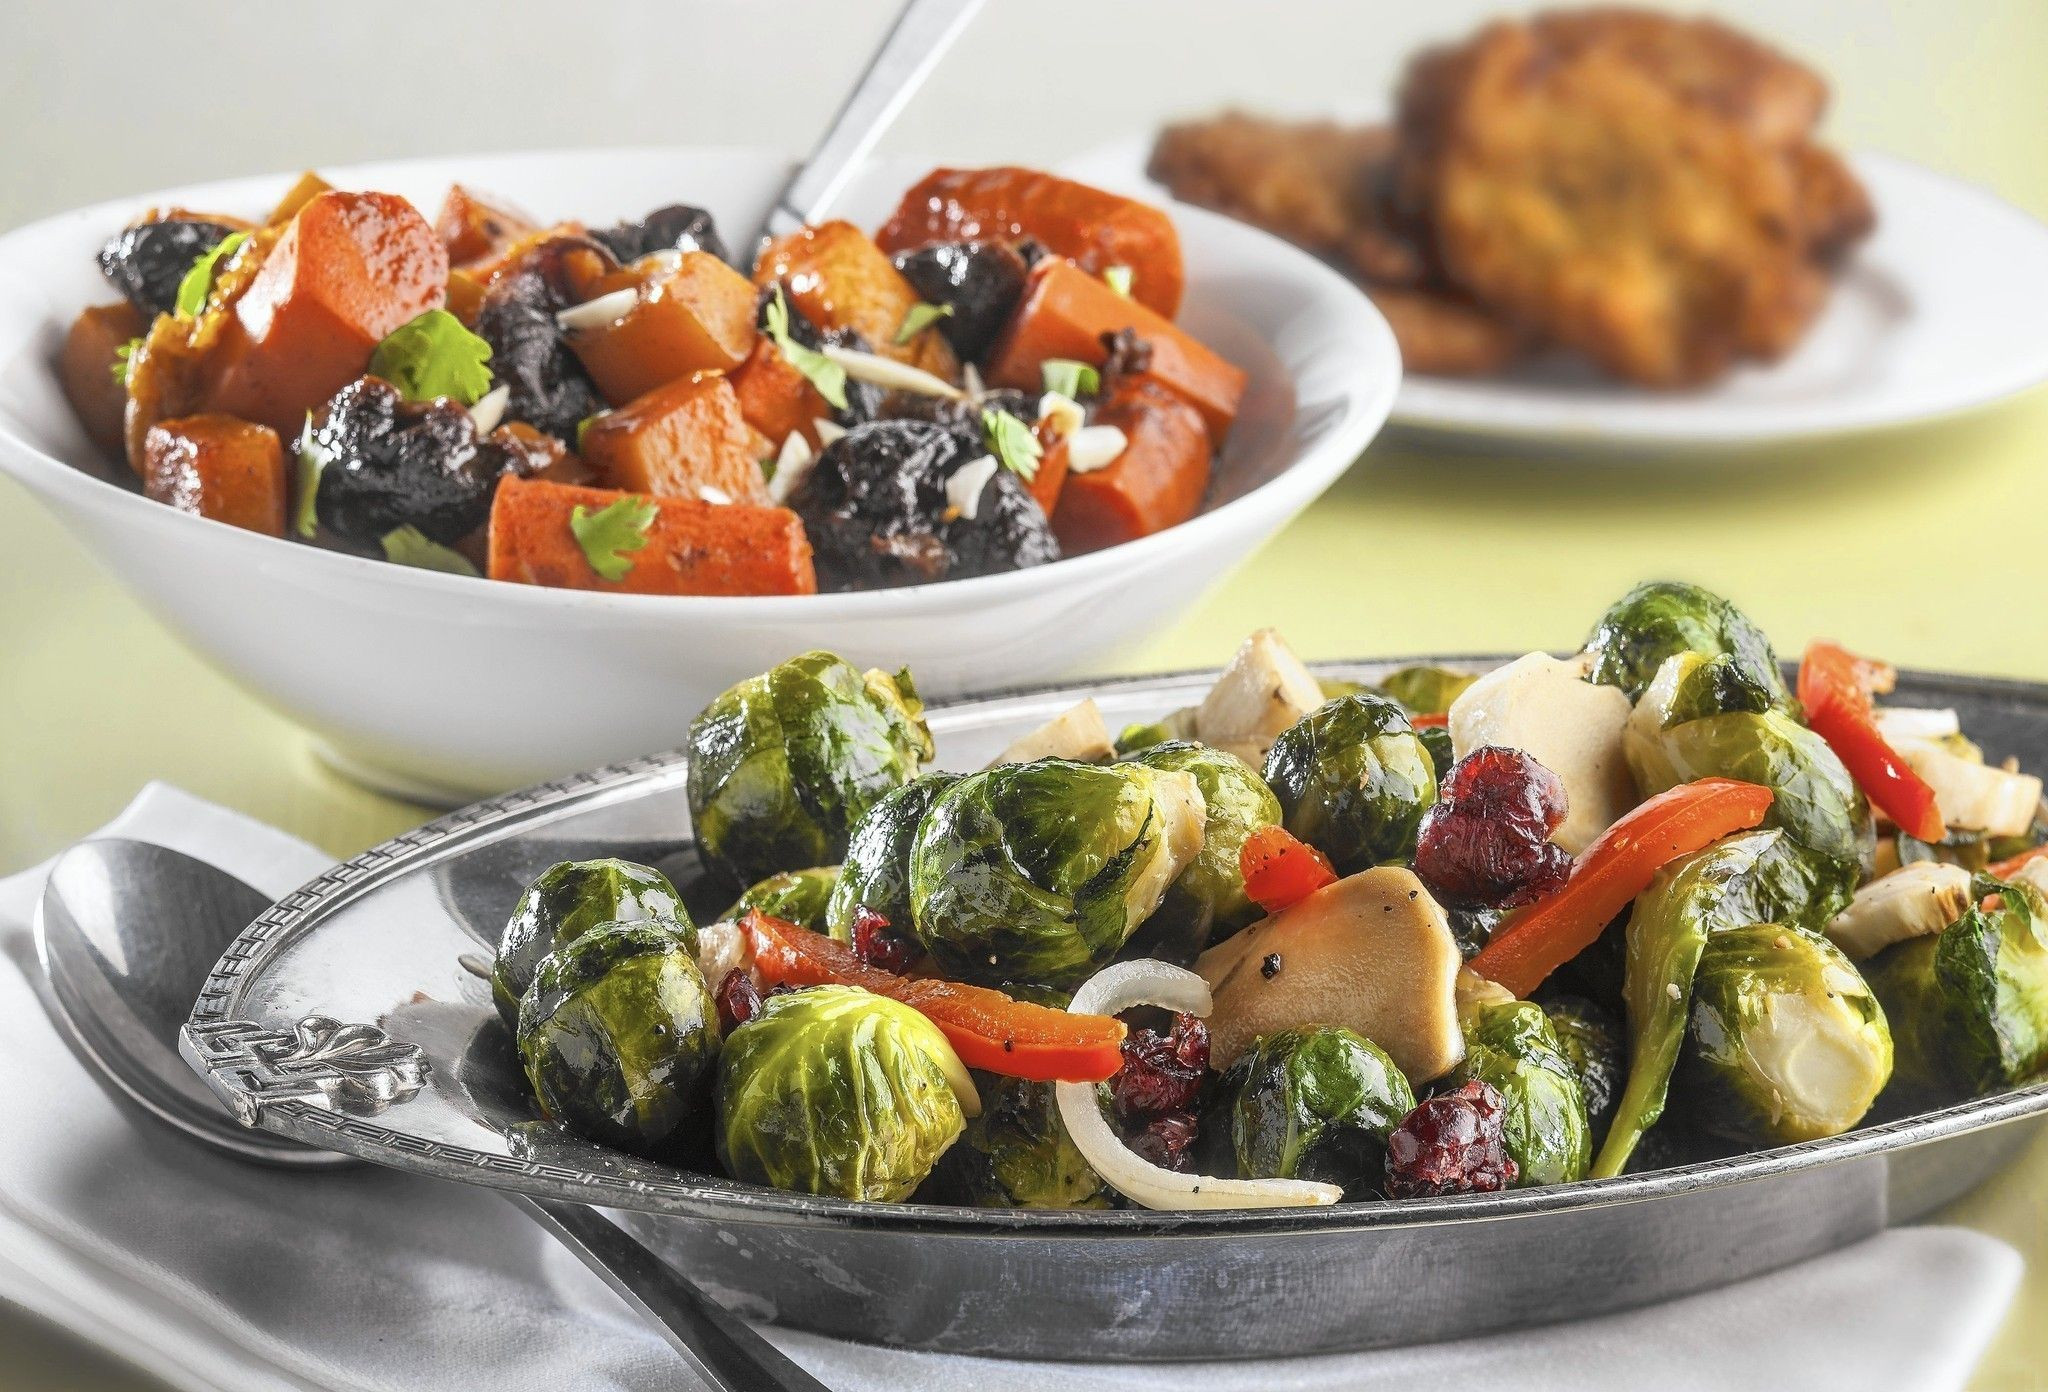 Hanukkah Side Dishes  Hanukkah side dishes to lighten the meal